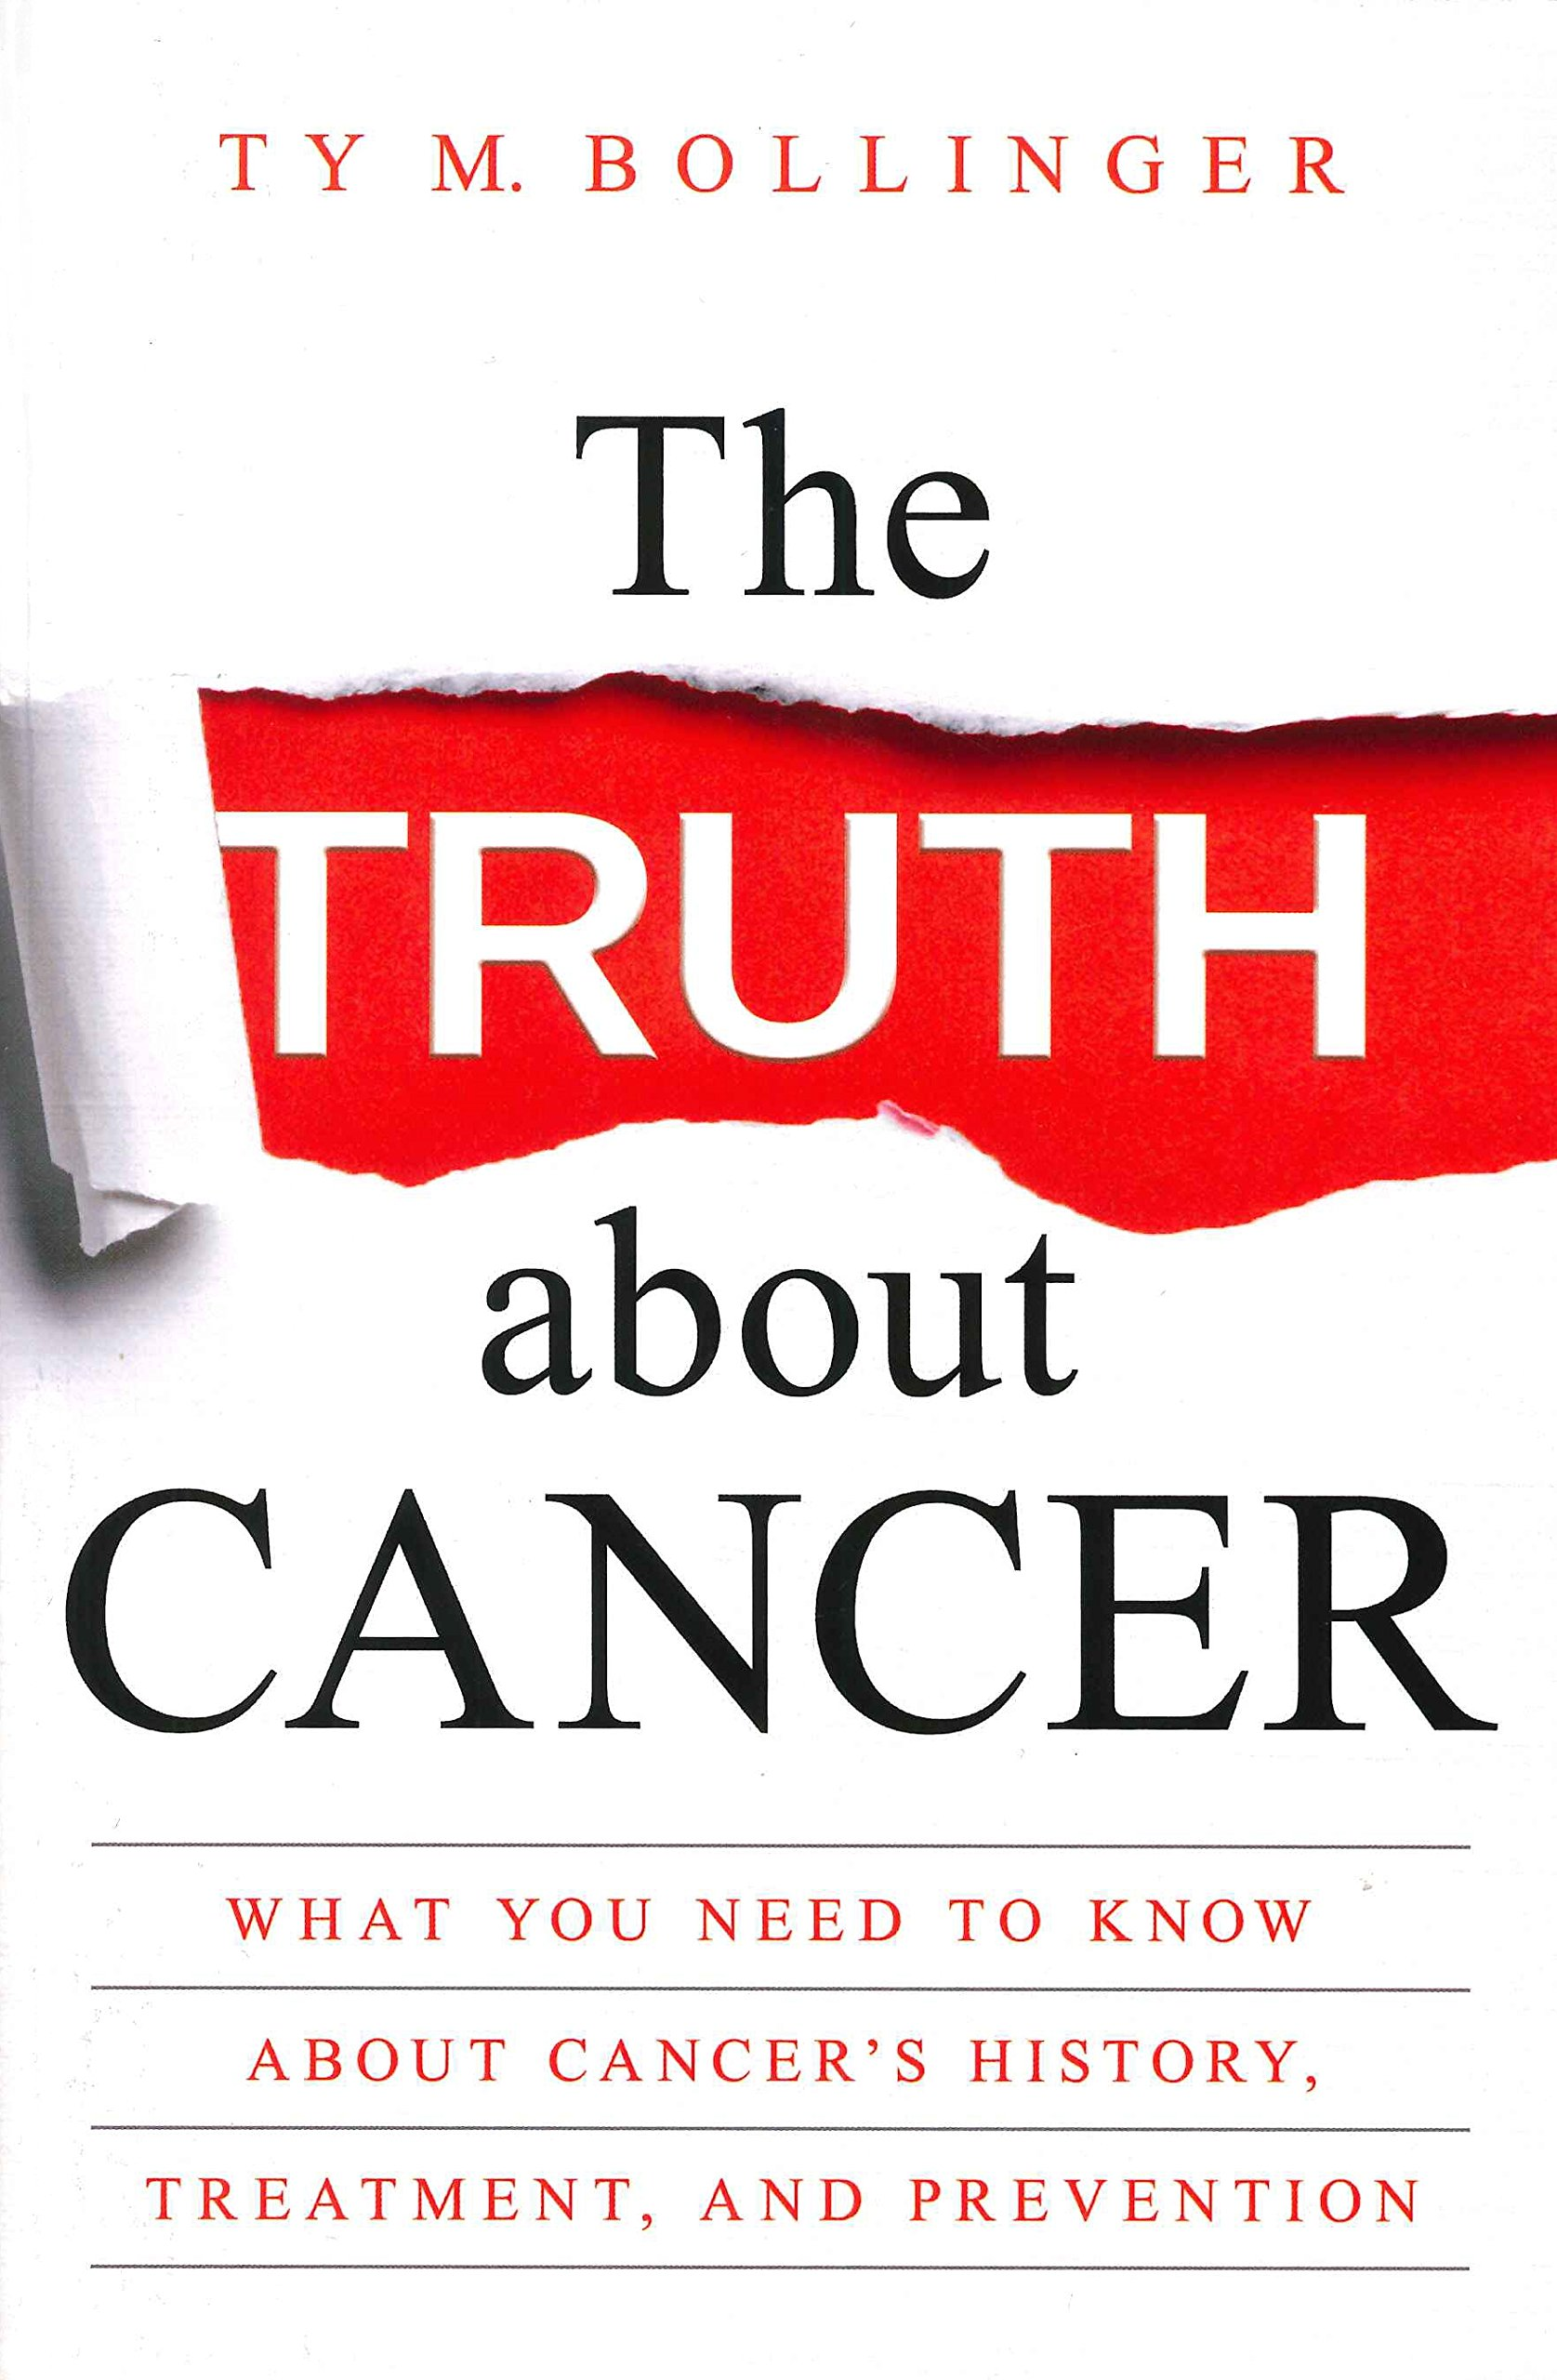 Truth about Cancer Treatment Prevention